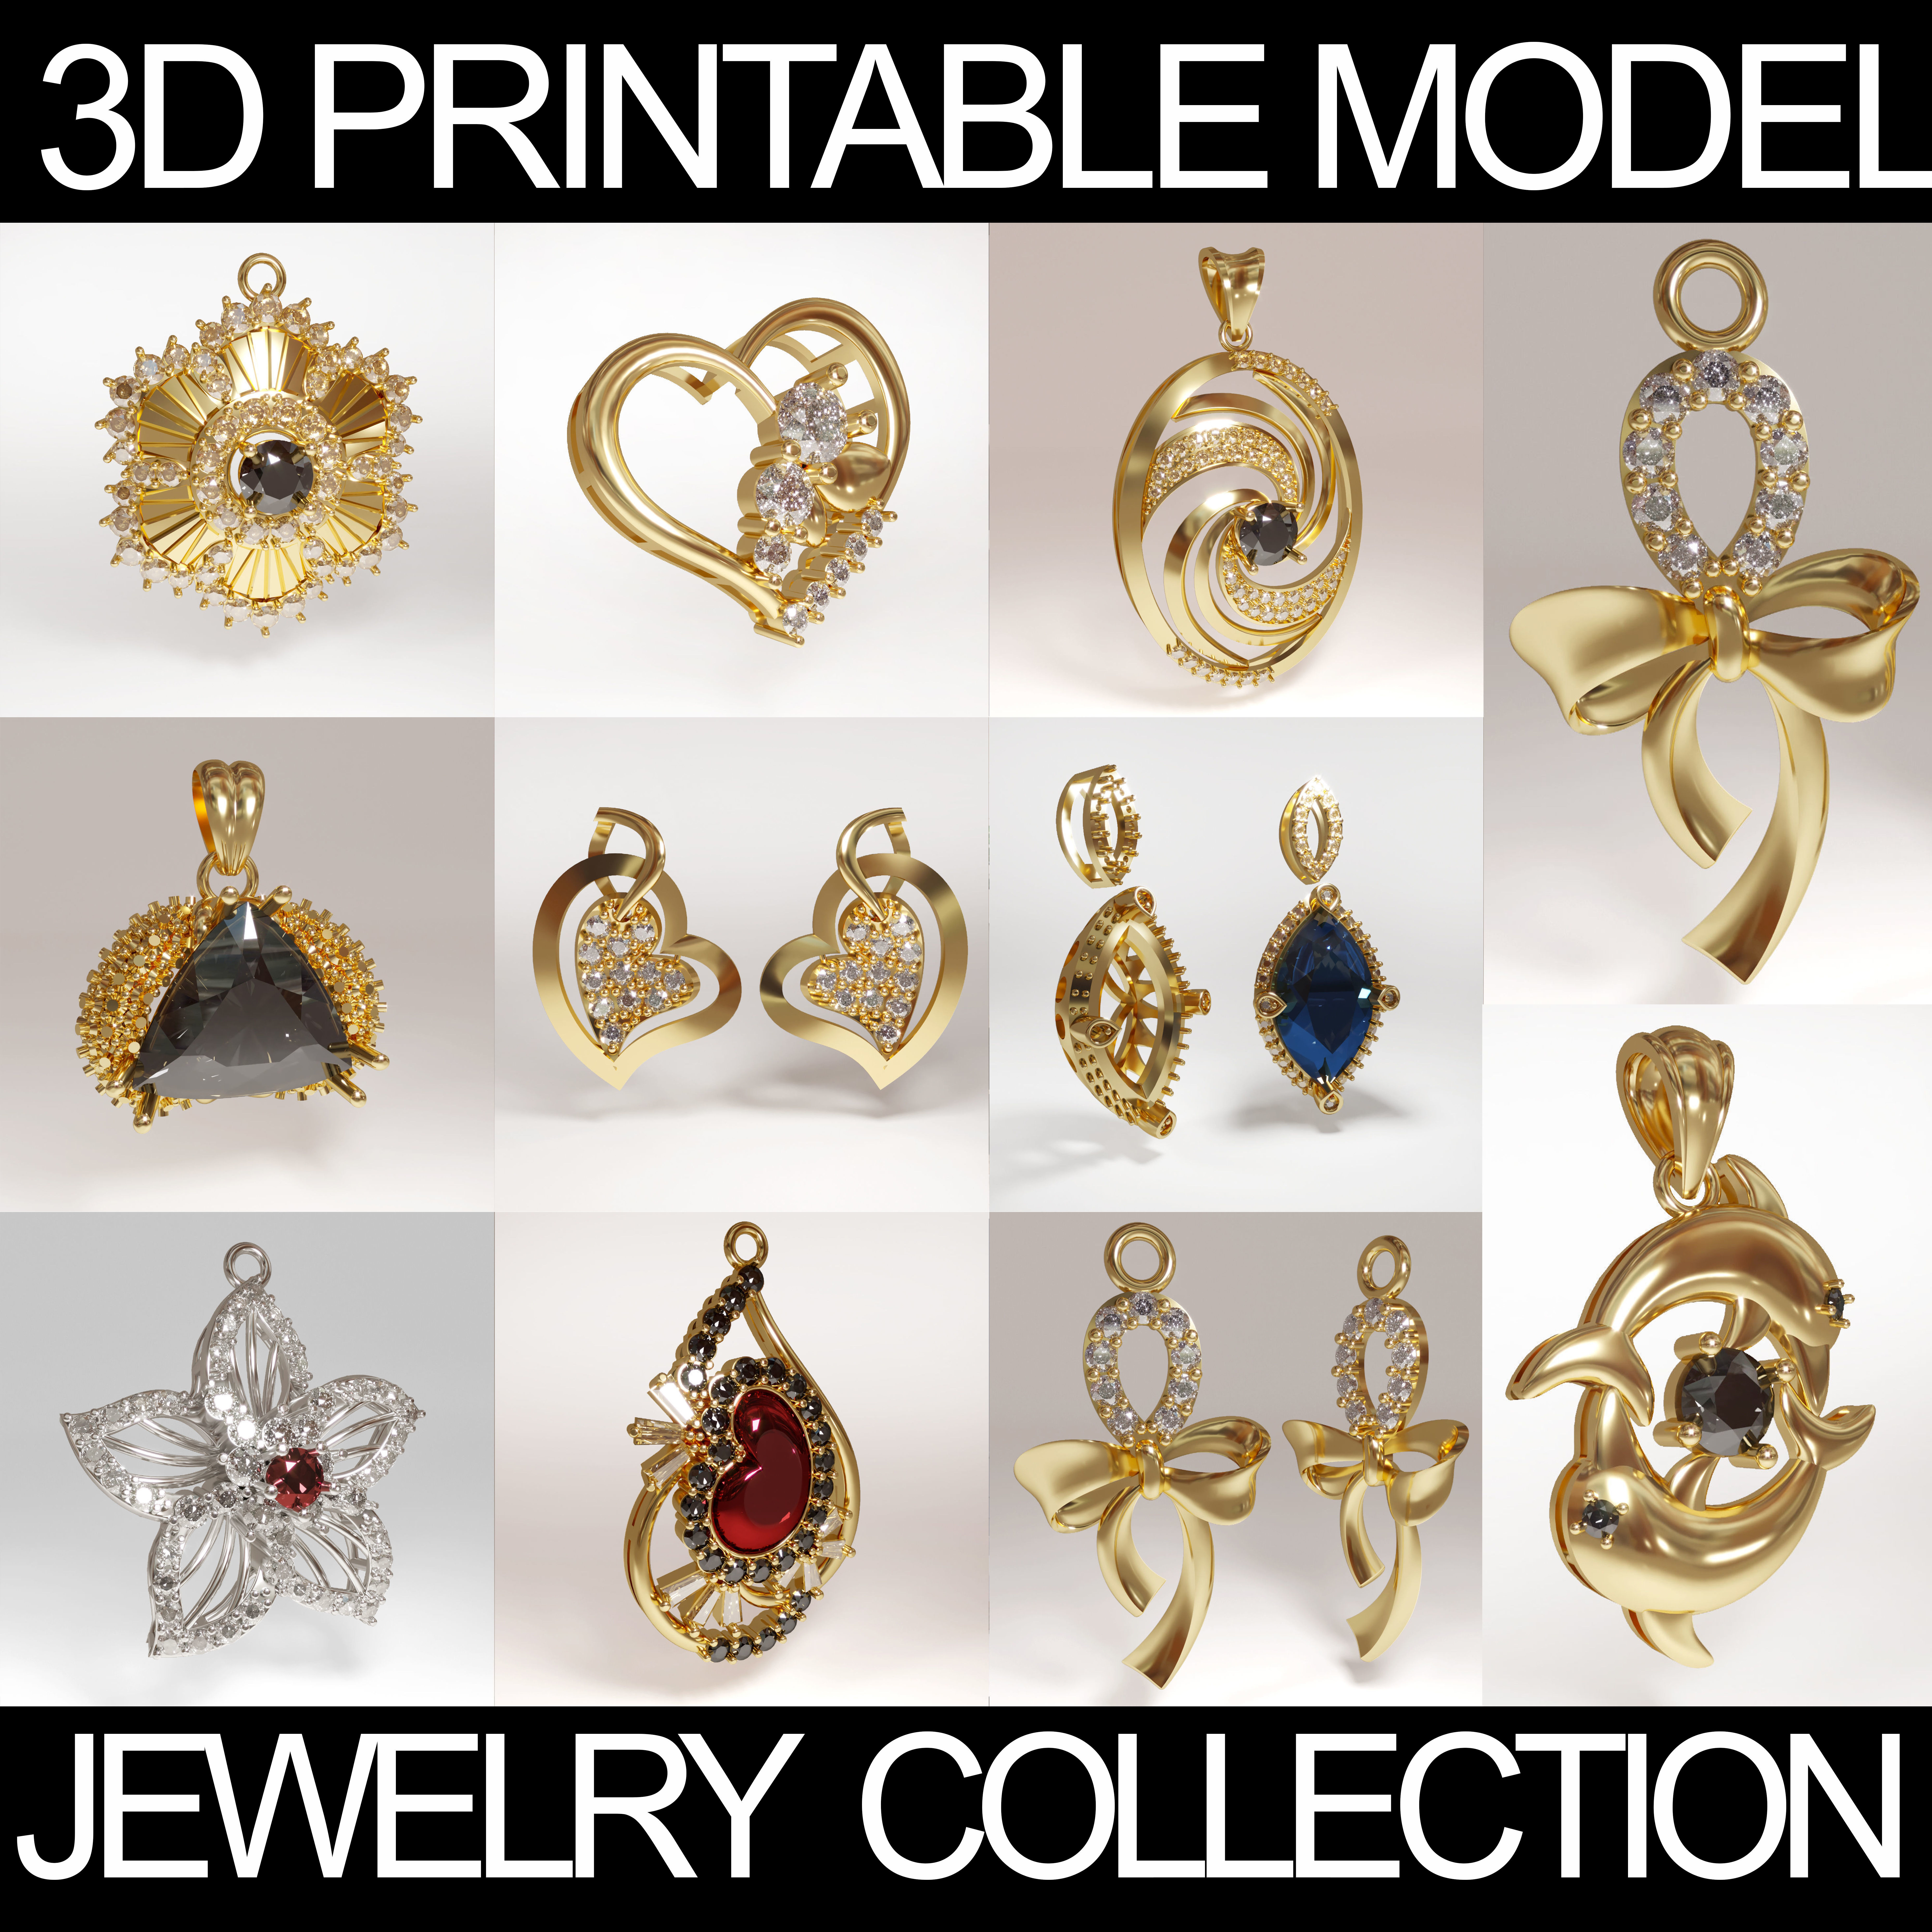 3d Printable Jewelry Collection